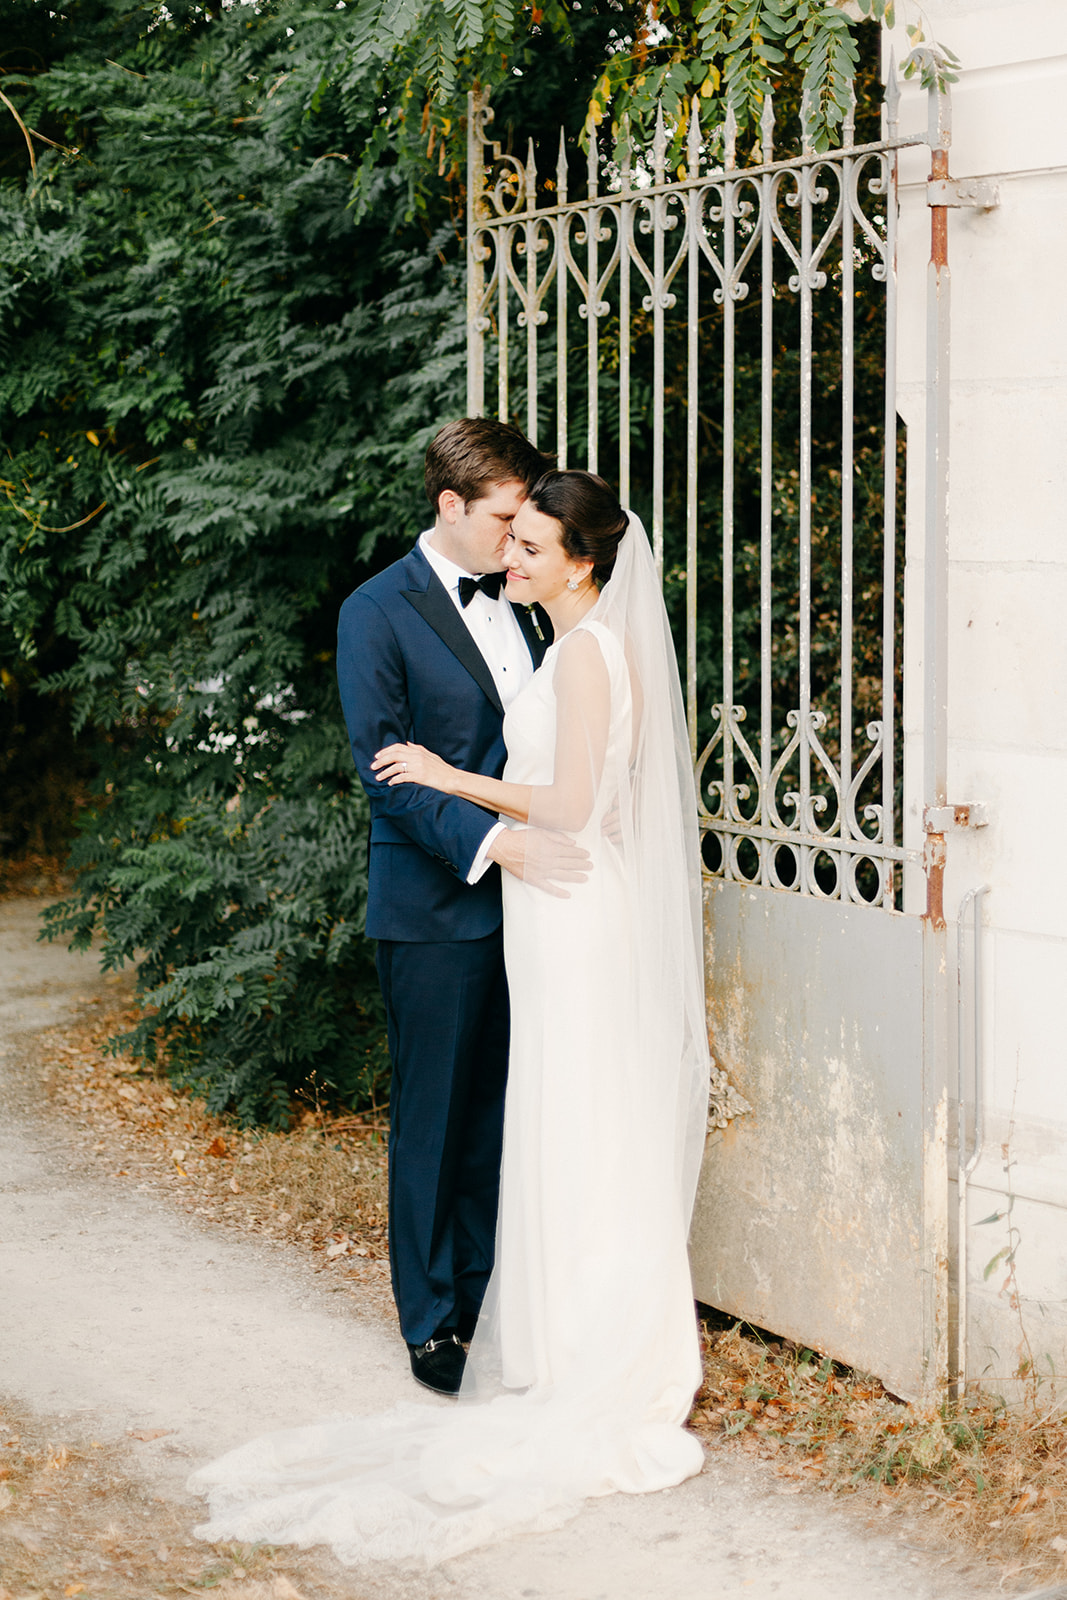 French Chateau Wedding, Events by Reagan, France Wedding, Destination Wedding Planner, Bride and Groom